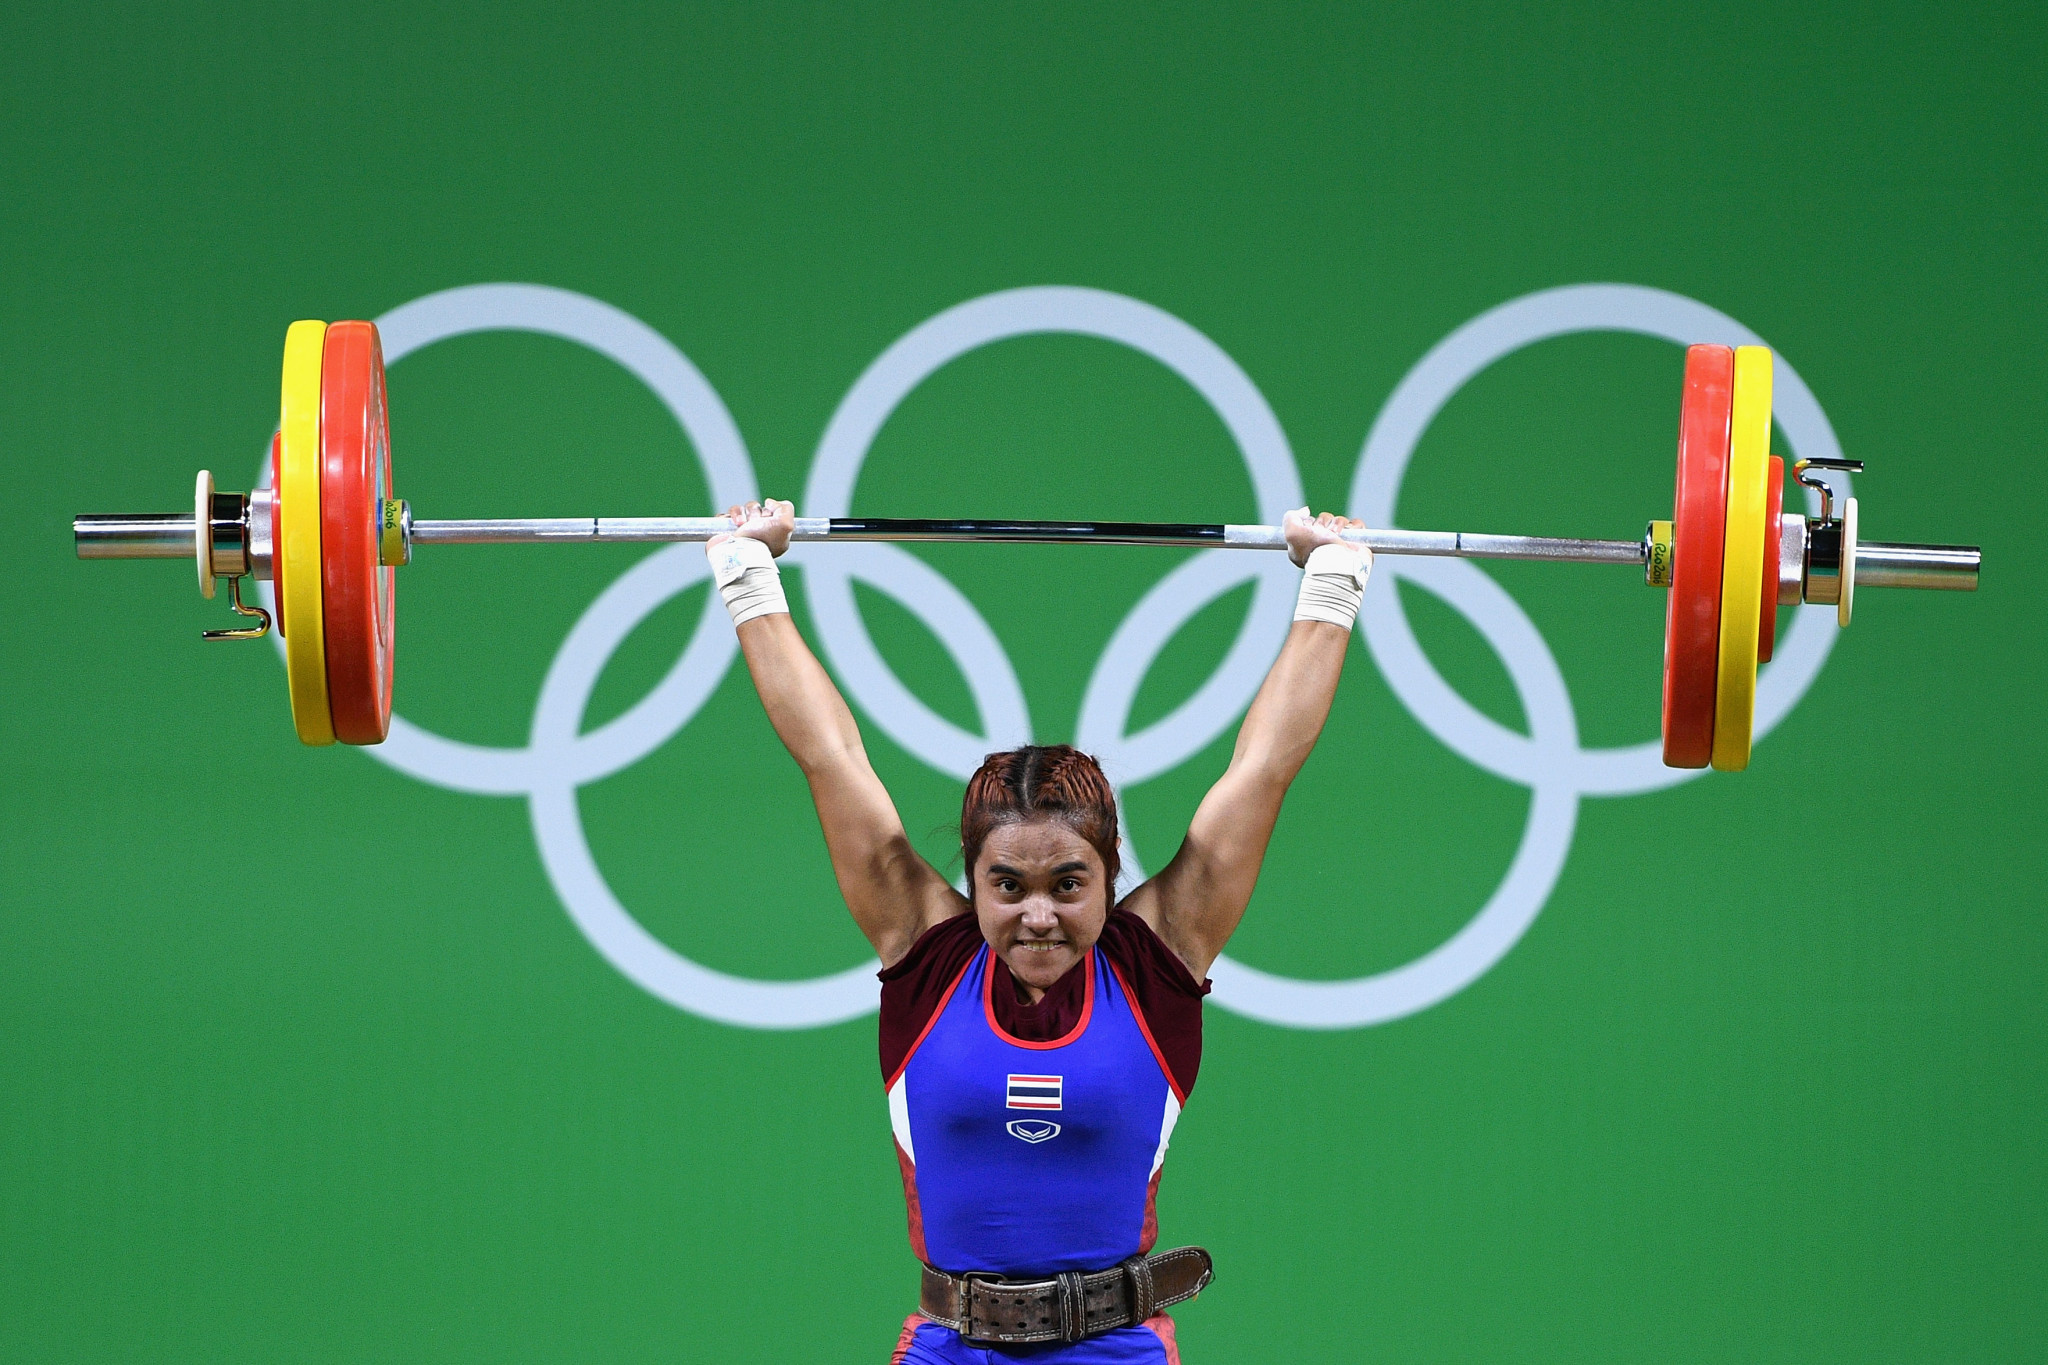 Sopita Tanasan is one of the high profile Thai weightlifters to have failed, putting the country's hosting of the World Championships in doubt ©Getty Images